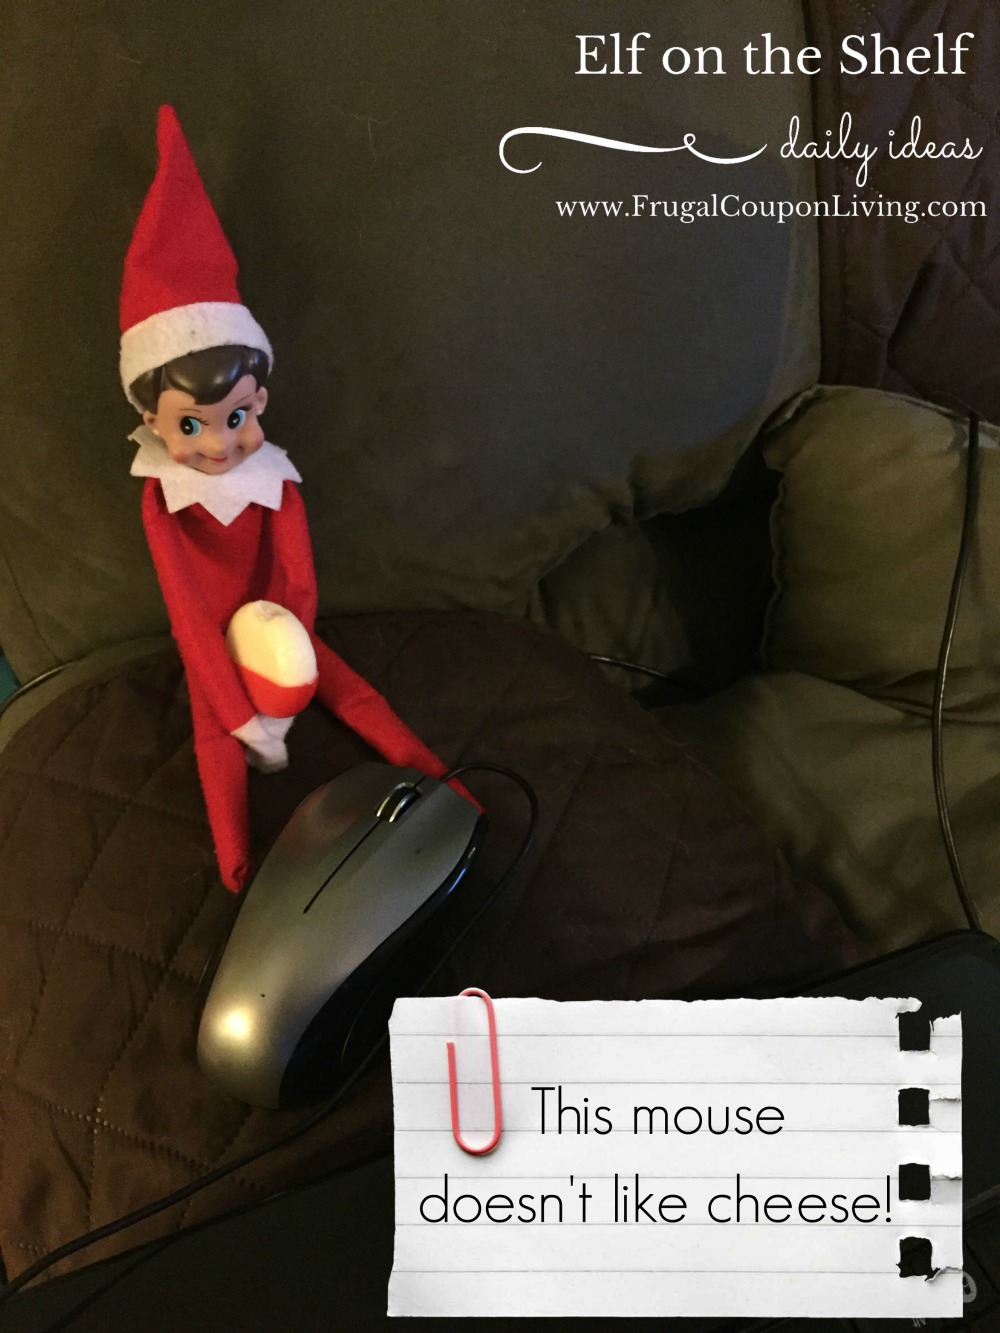 elf-cheese-mouse-elf-on-the-shelf-ideas-frugal-coupon-living